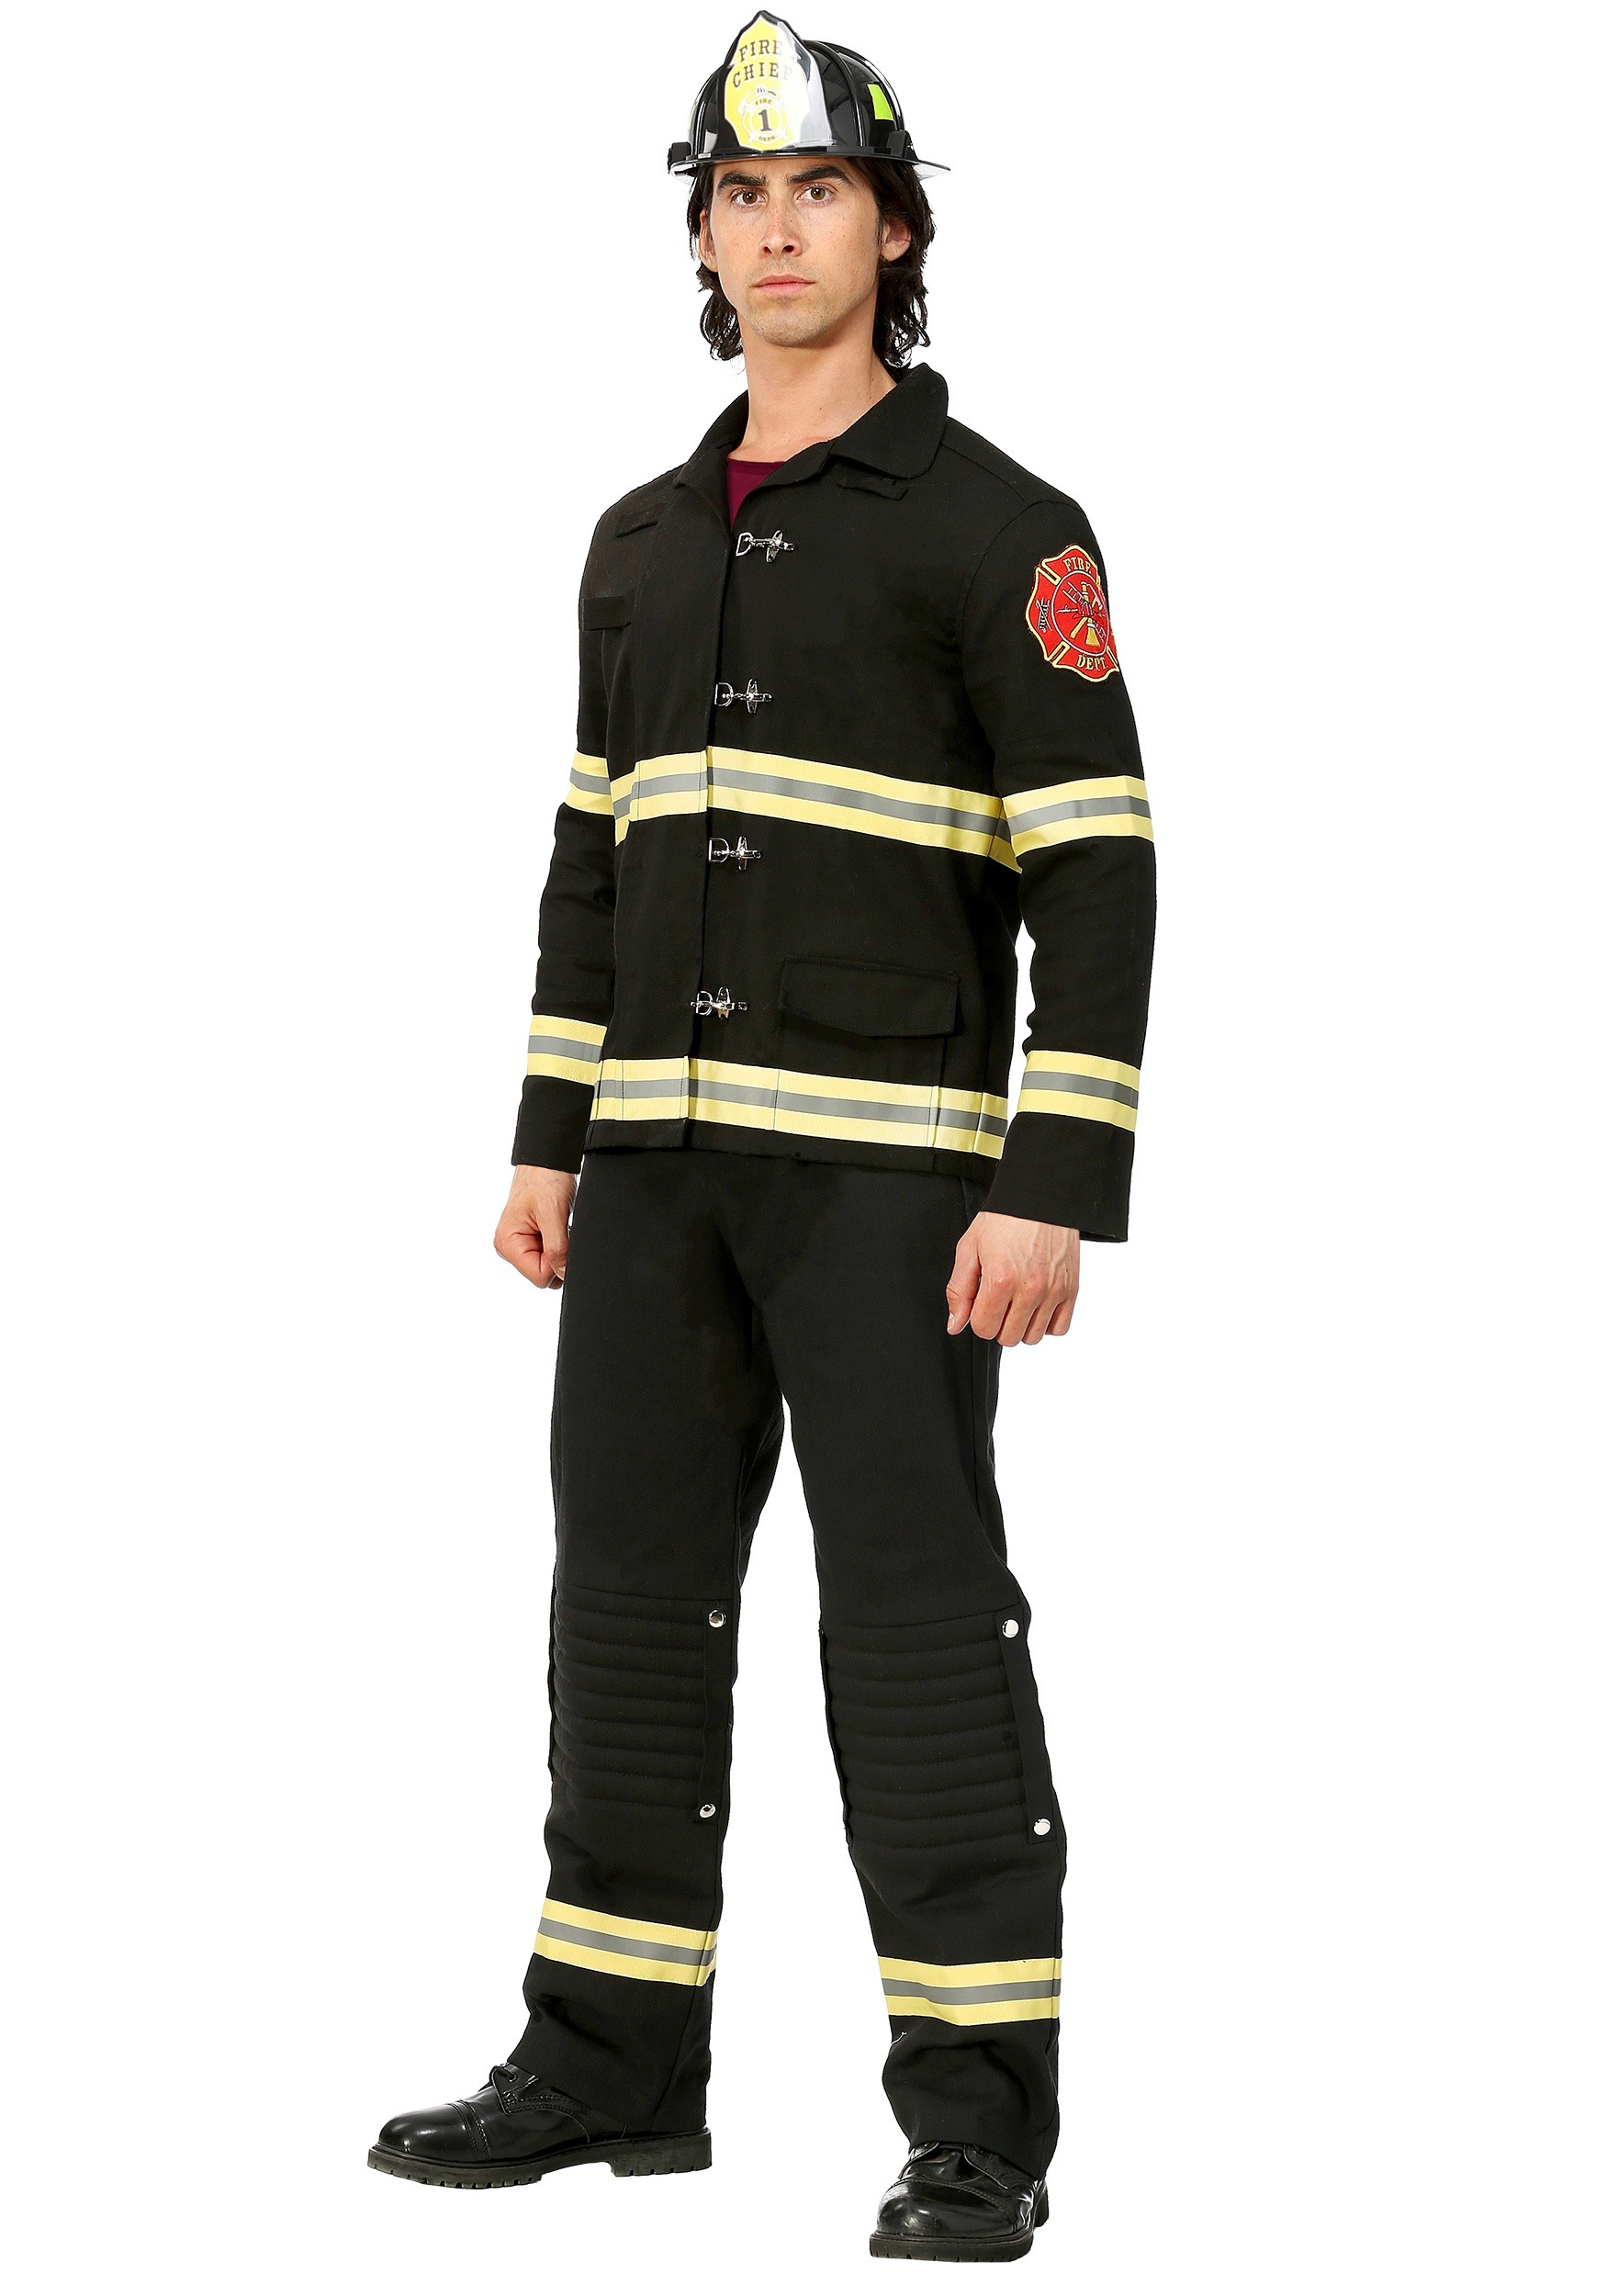 Black Uniform Firefighter Costume for Men